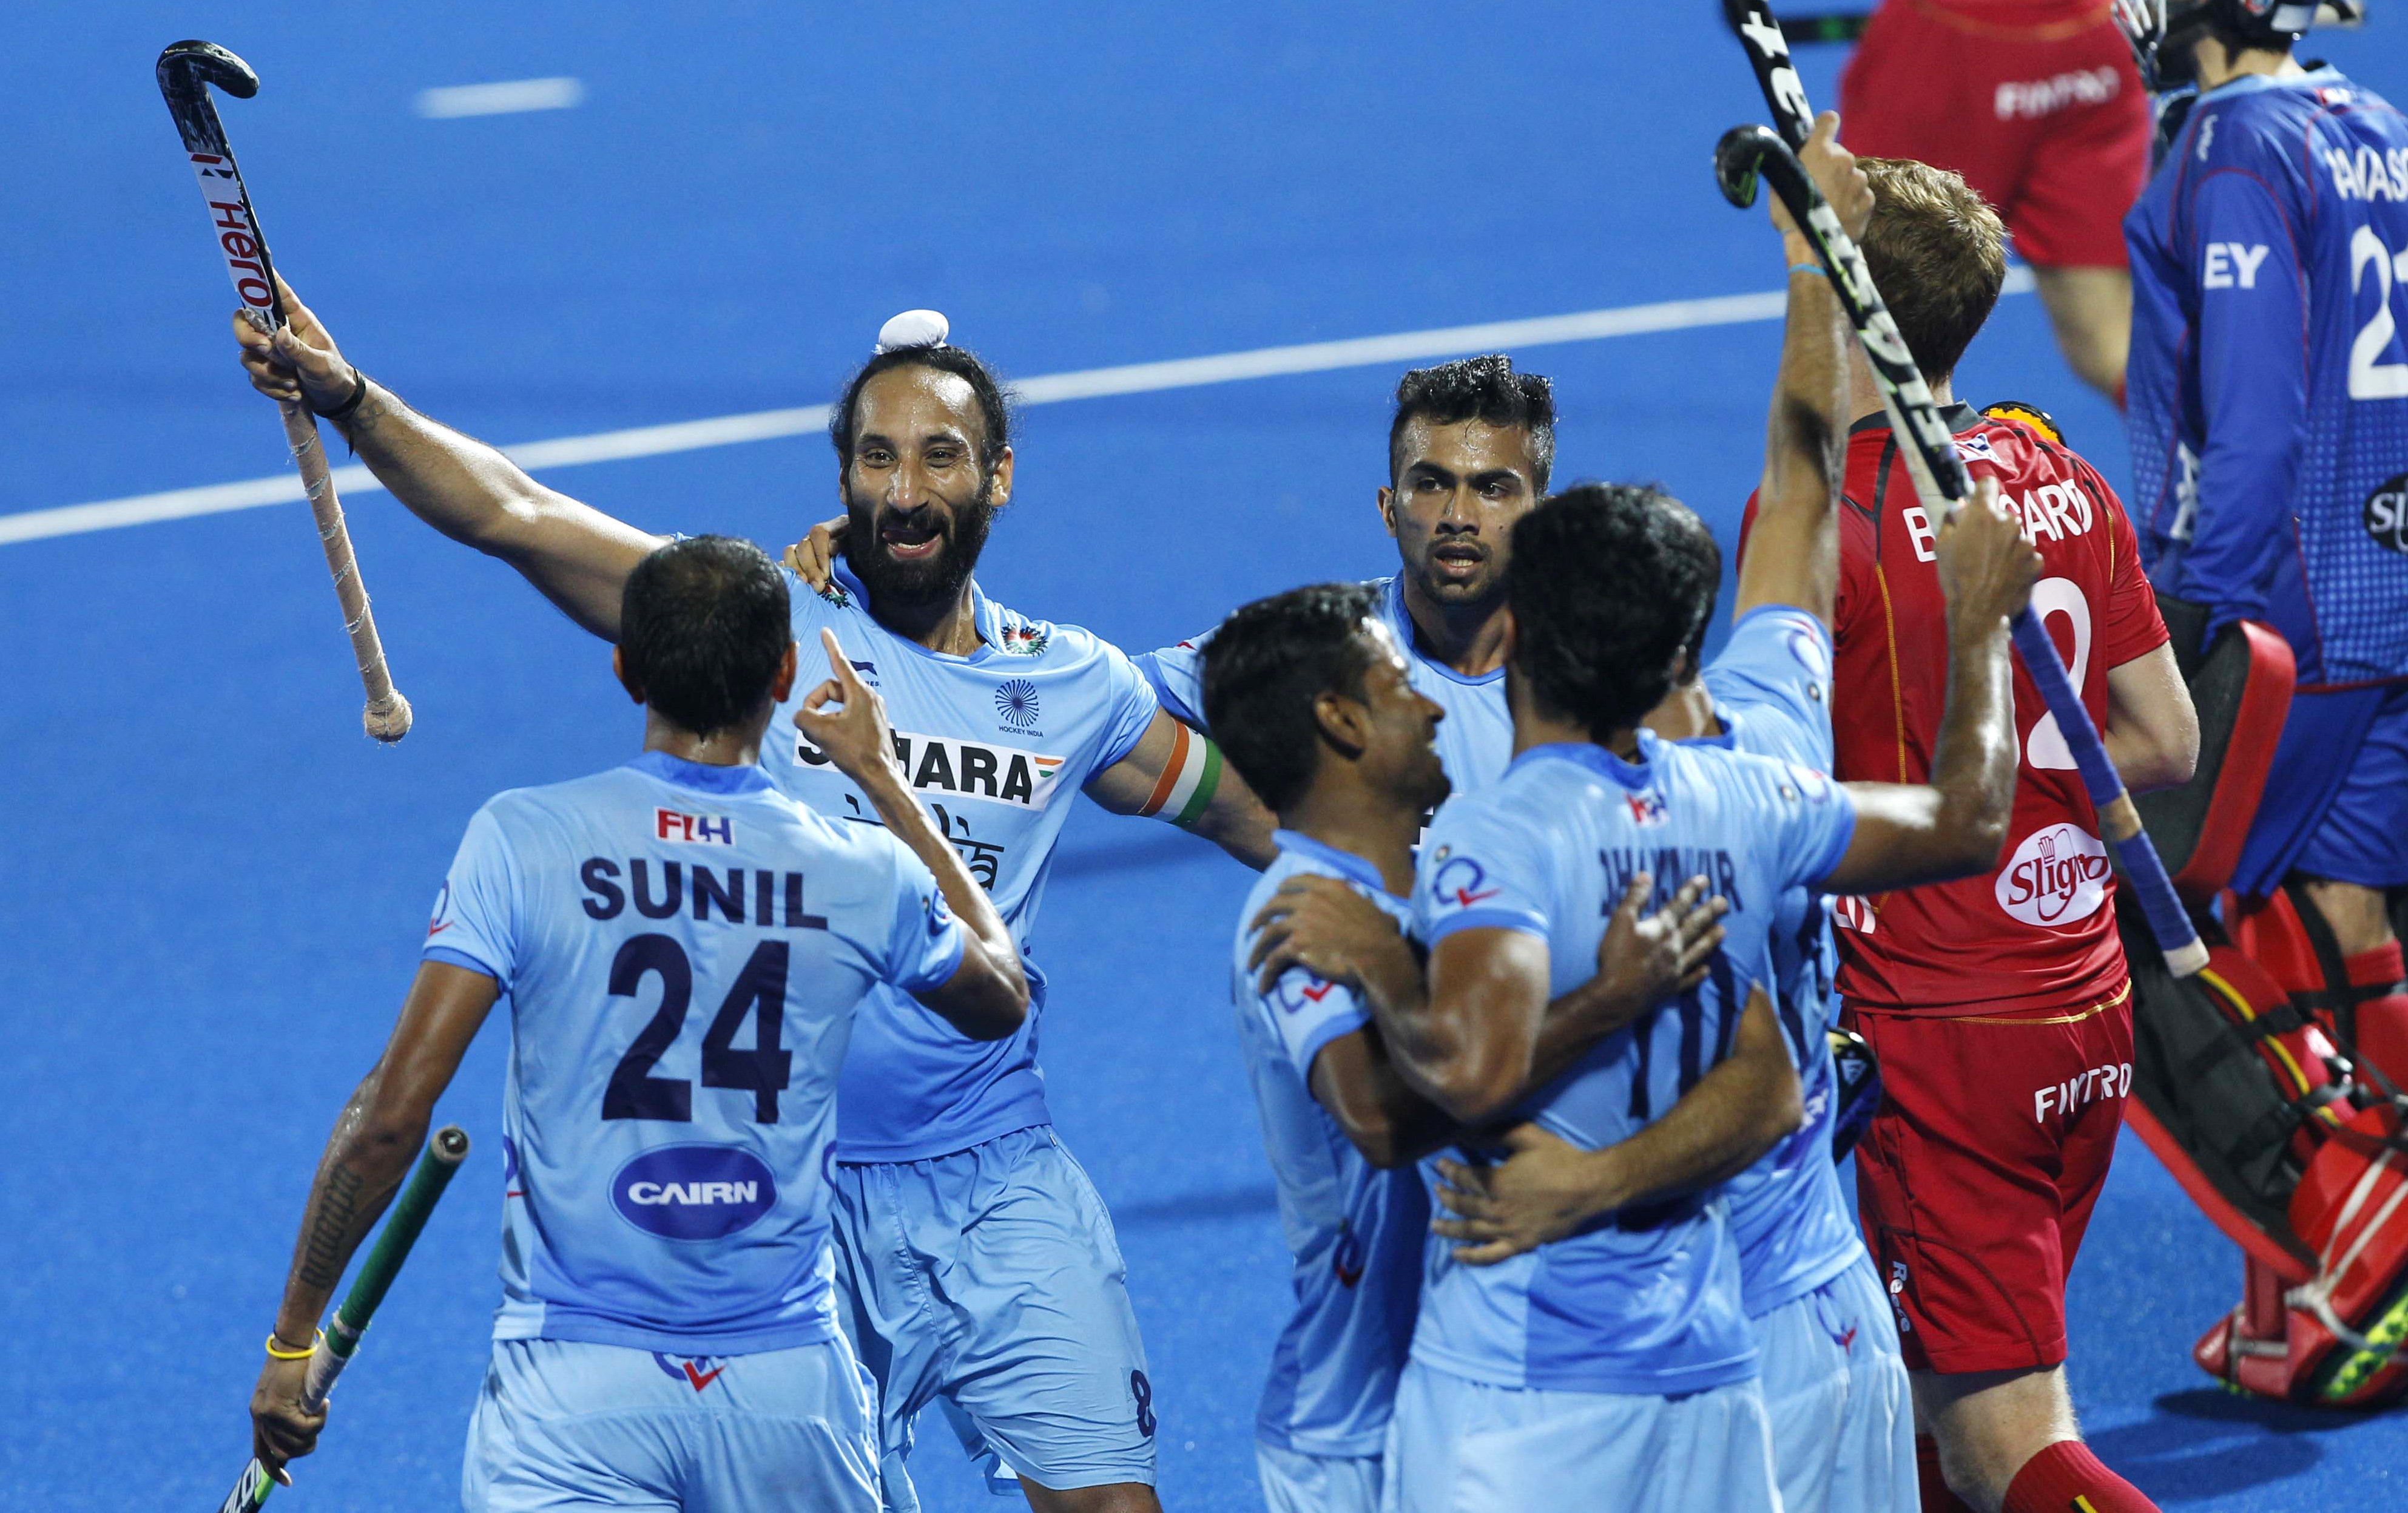 Indian Hockey Team for Rio Olympics will be announced on 5th July